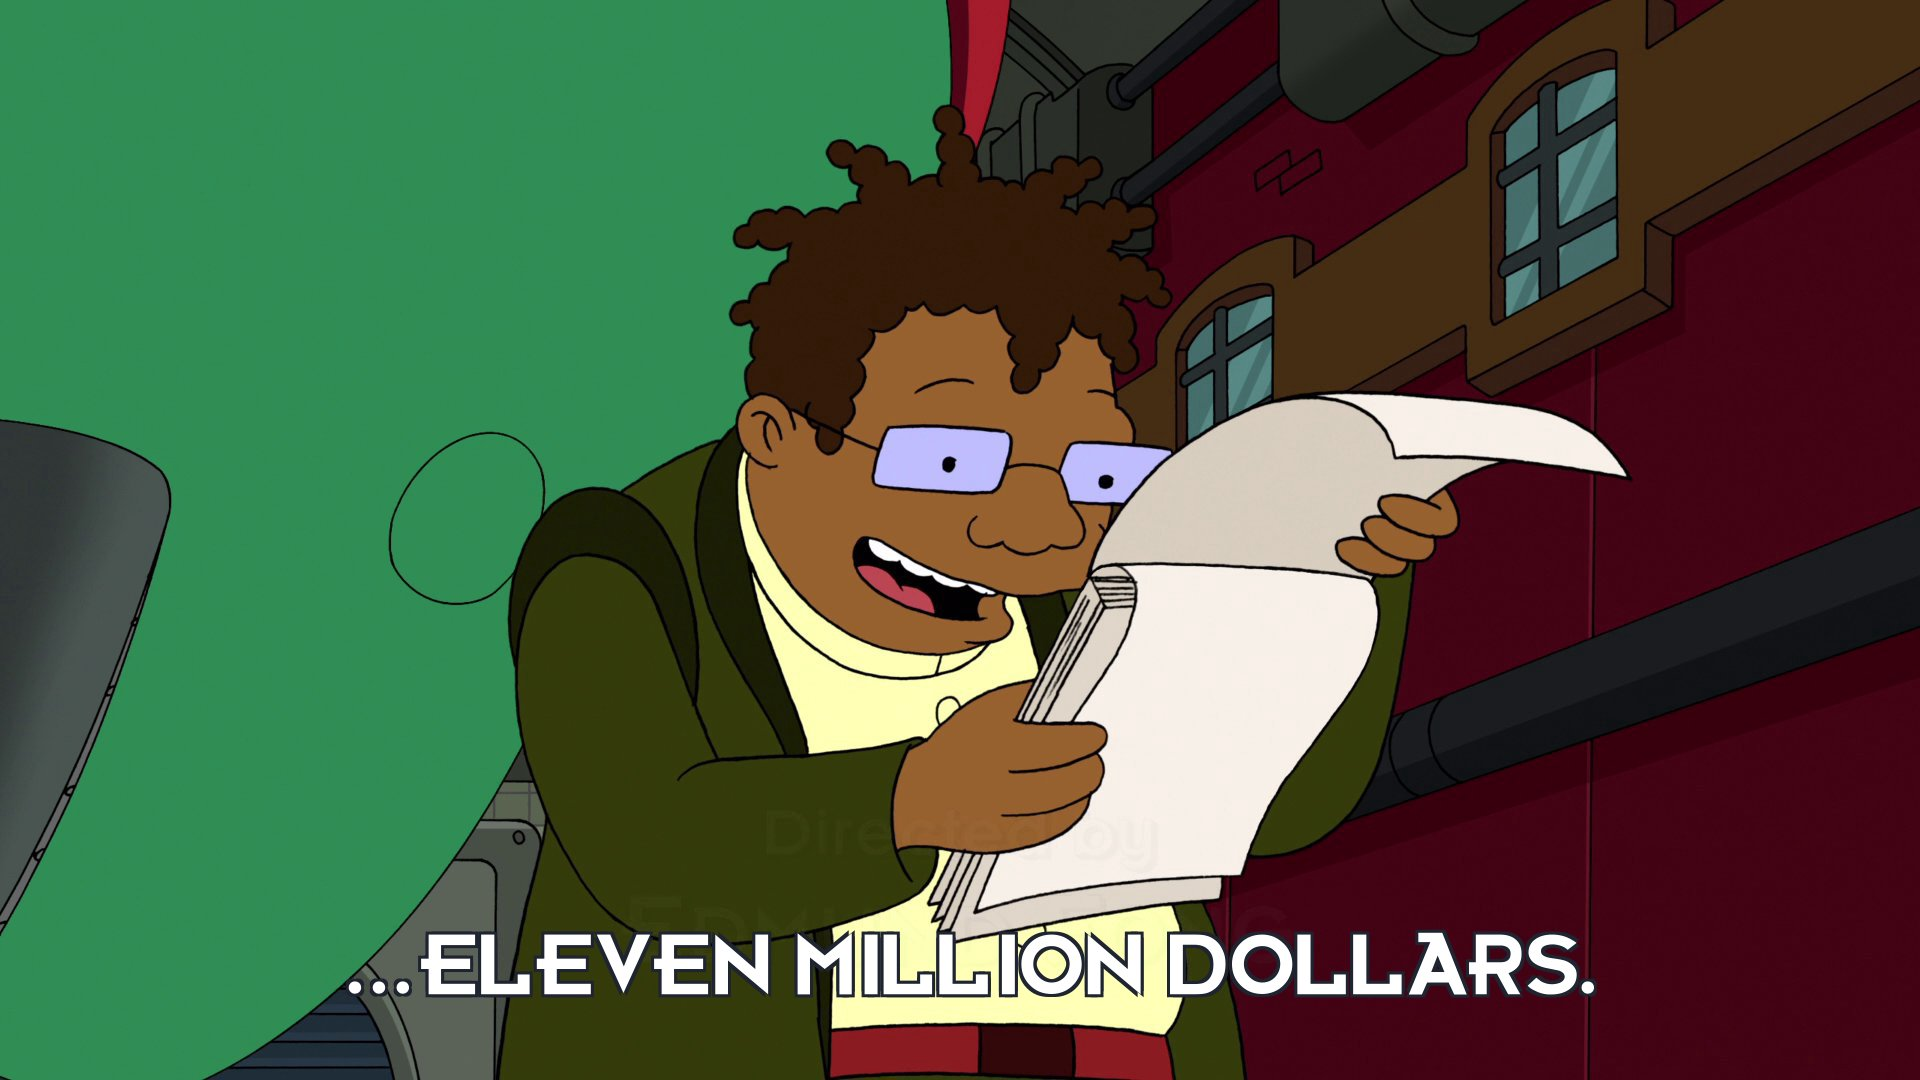 Hermes Conrad: ...eleven million dollars.